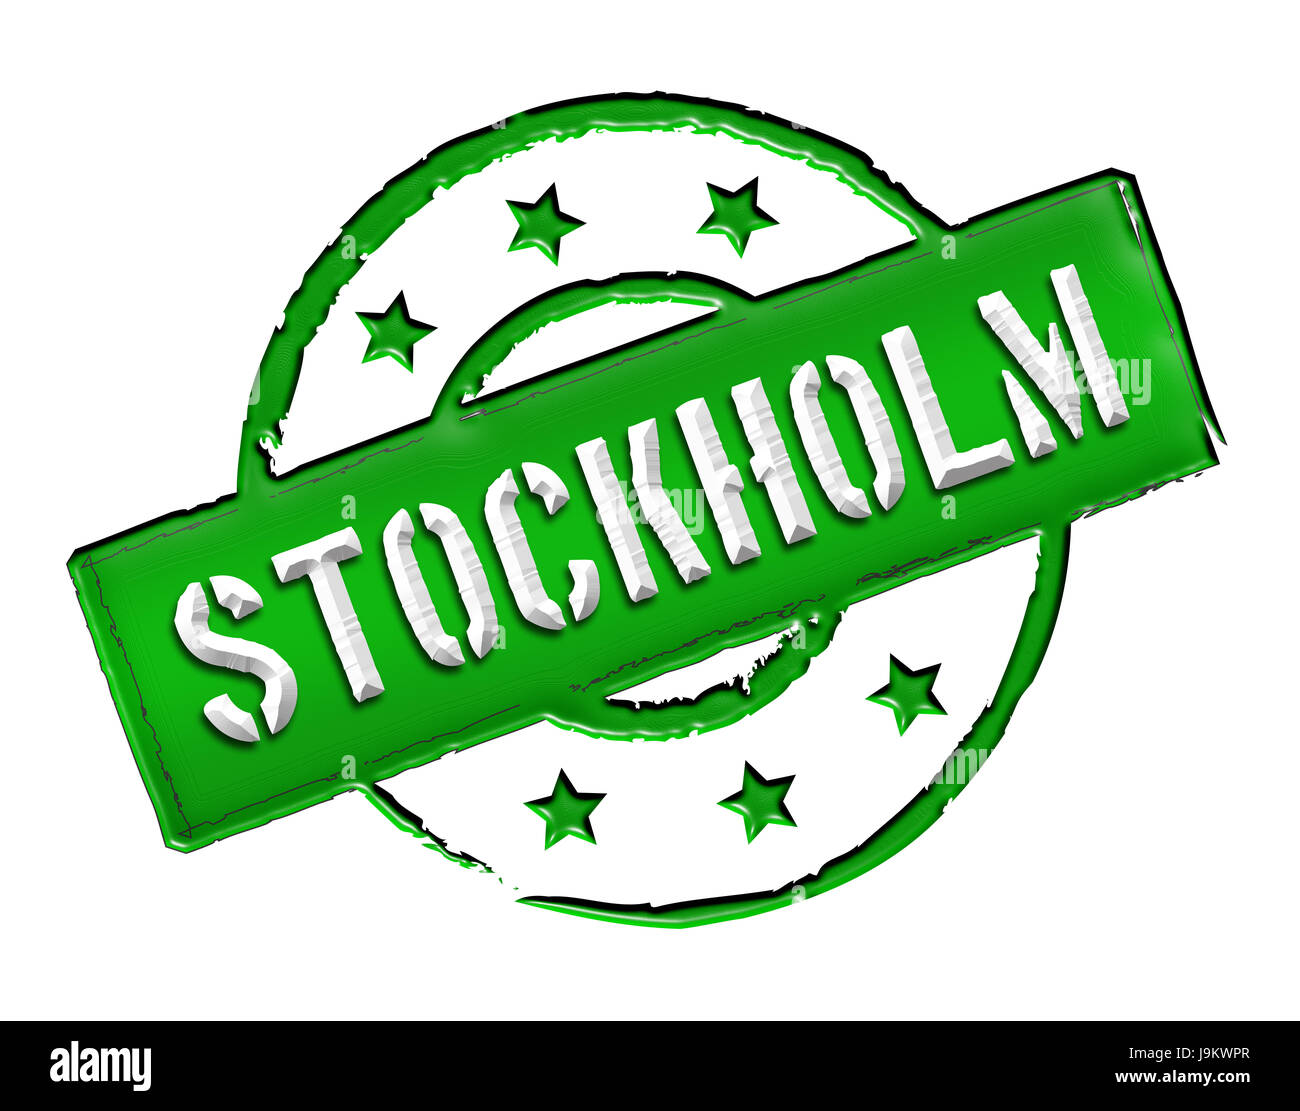 sweden, stockholm, stockhom, capital, suede, isolated, sweden, caution, - Stock Image